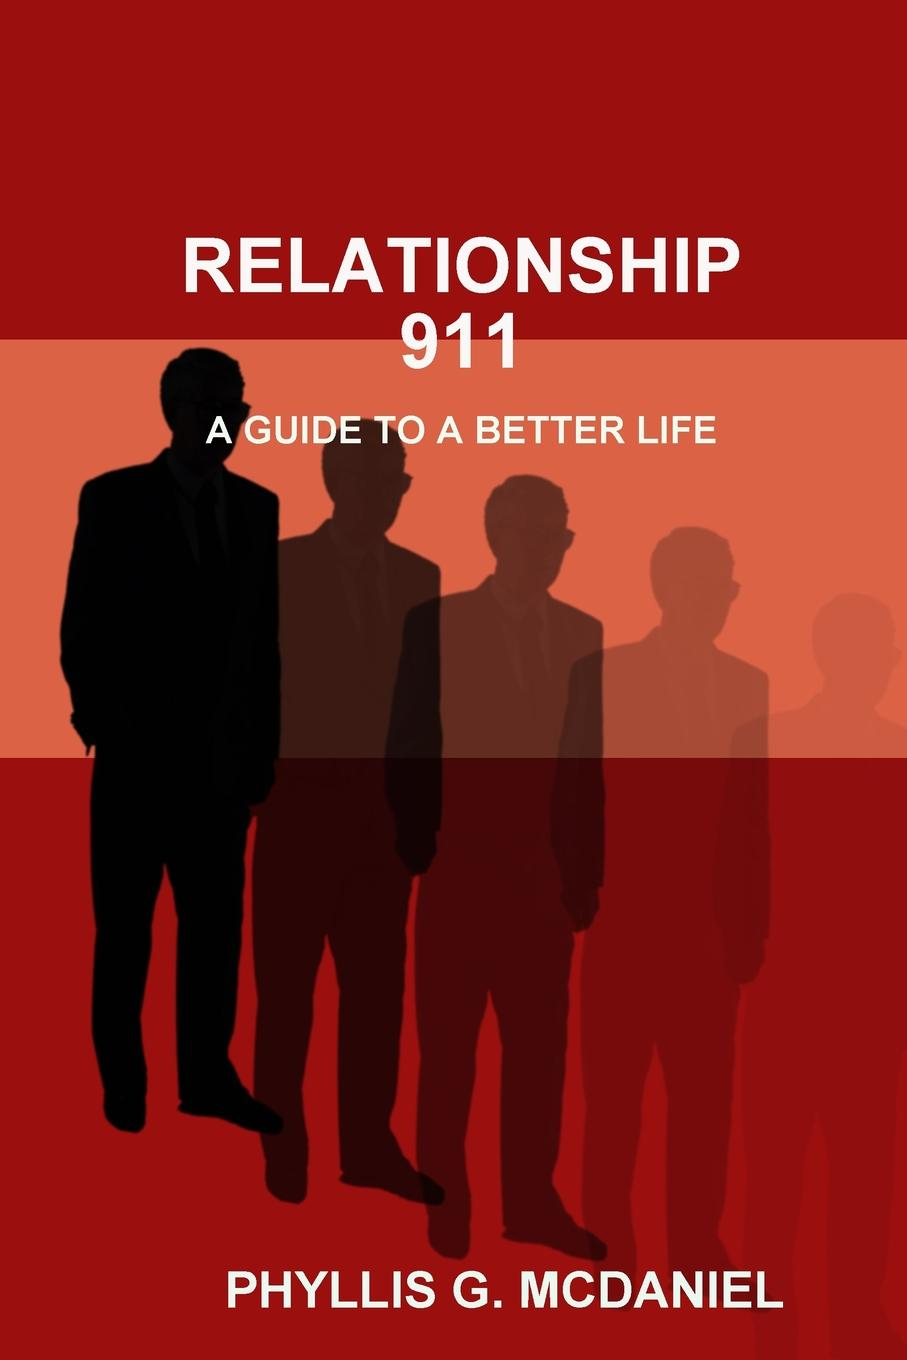 PHYLLIS G. MCDANIEL RELATIONSHIP 911. A GUIDE TO A BETTER LIFE the road to a positive life